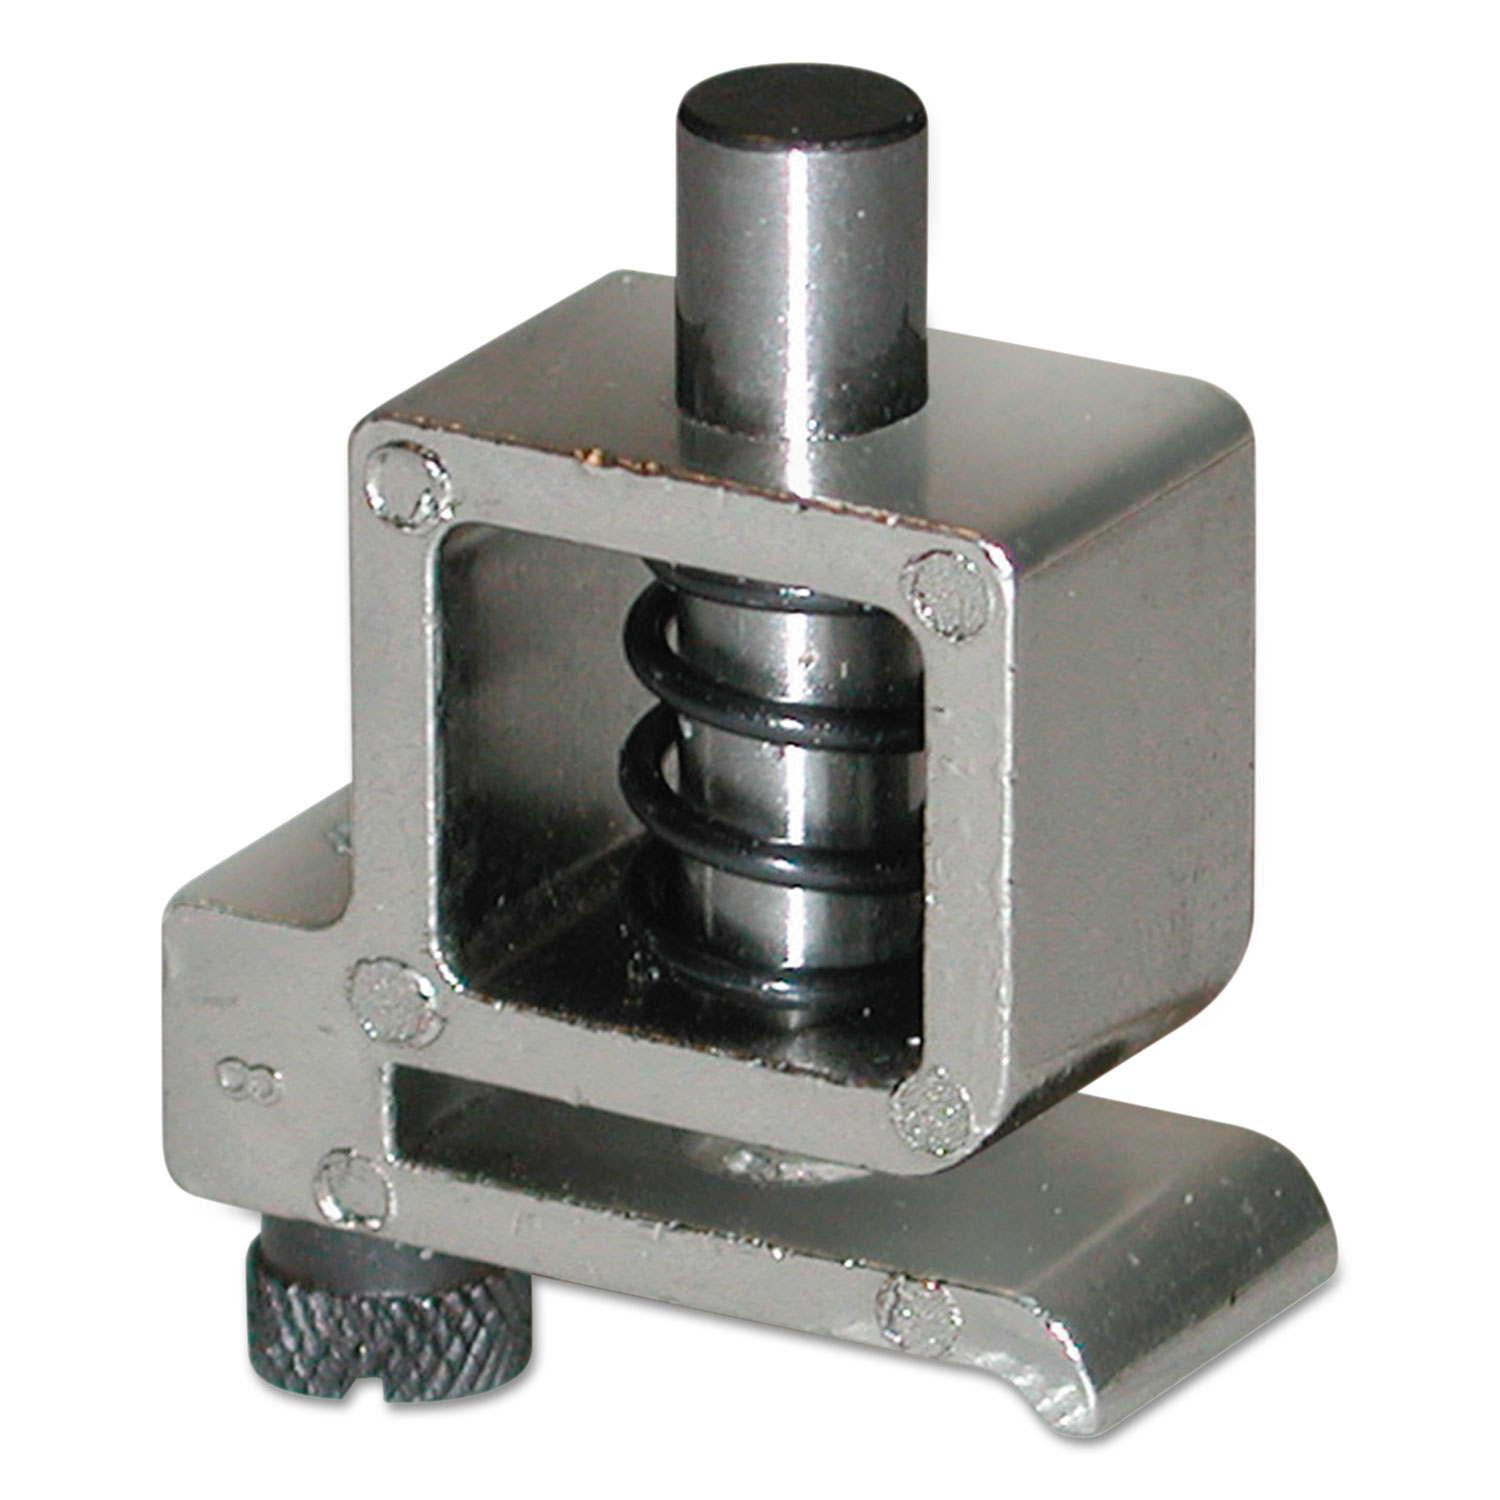 Replacement Punch Head for SWI74030/74031/74034 Hole Punch, 9/32 Diameter SWI74865